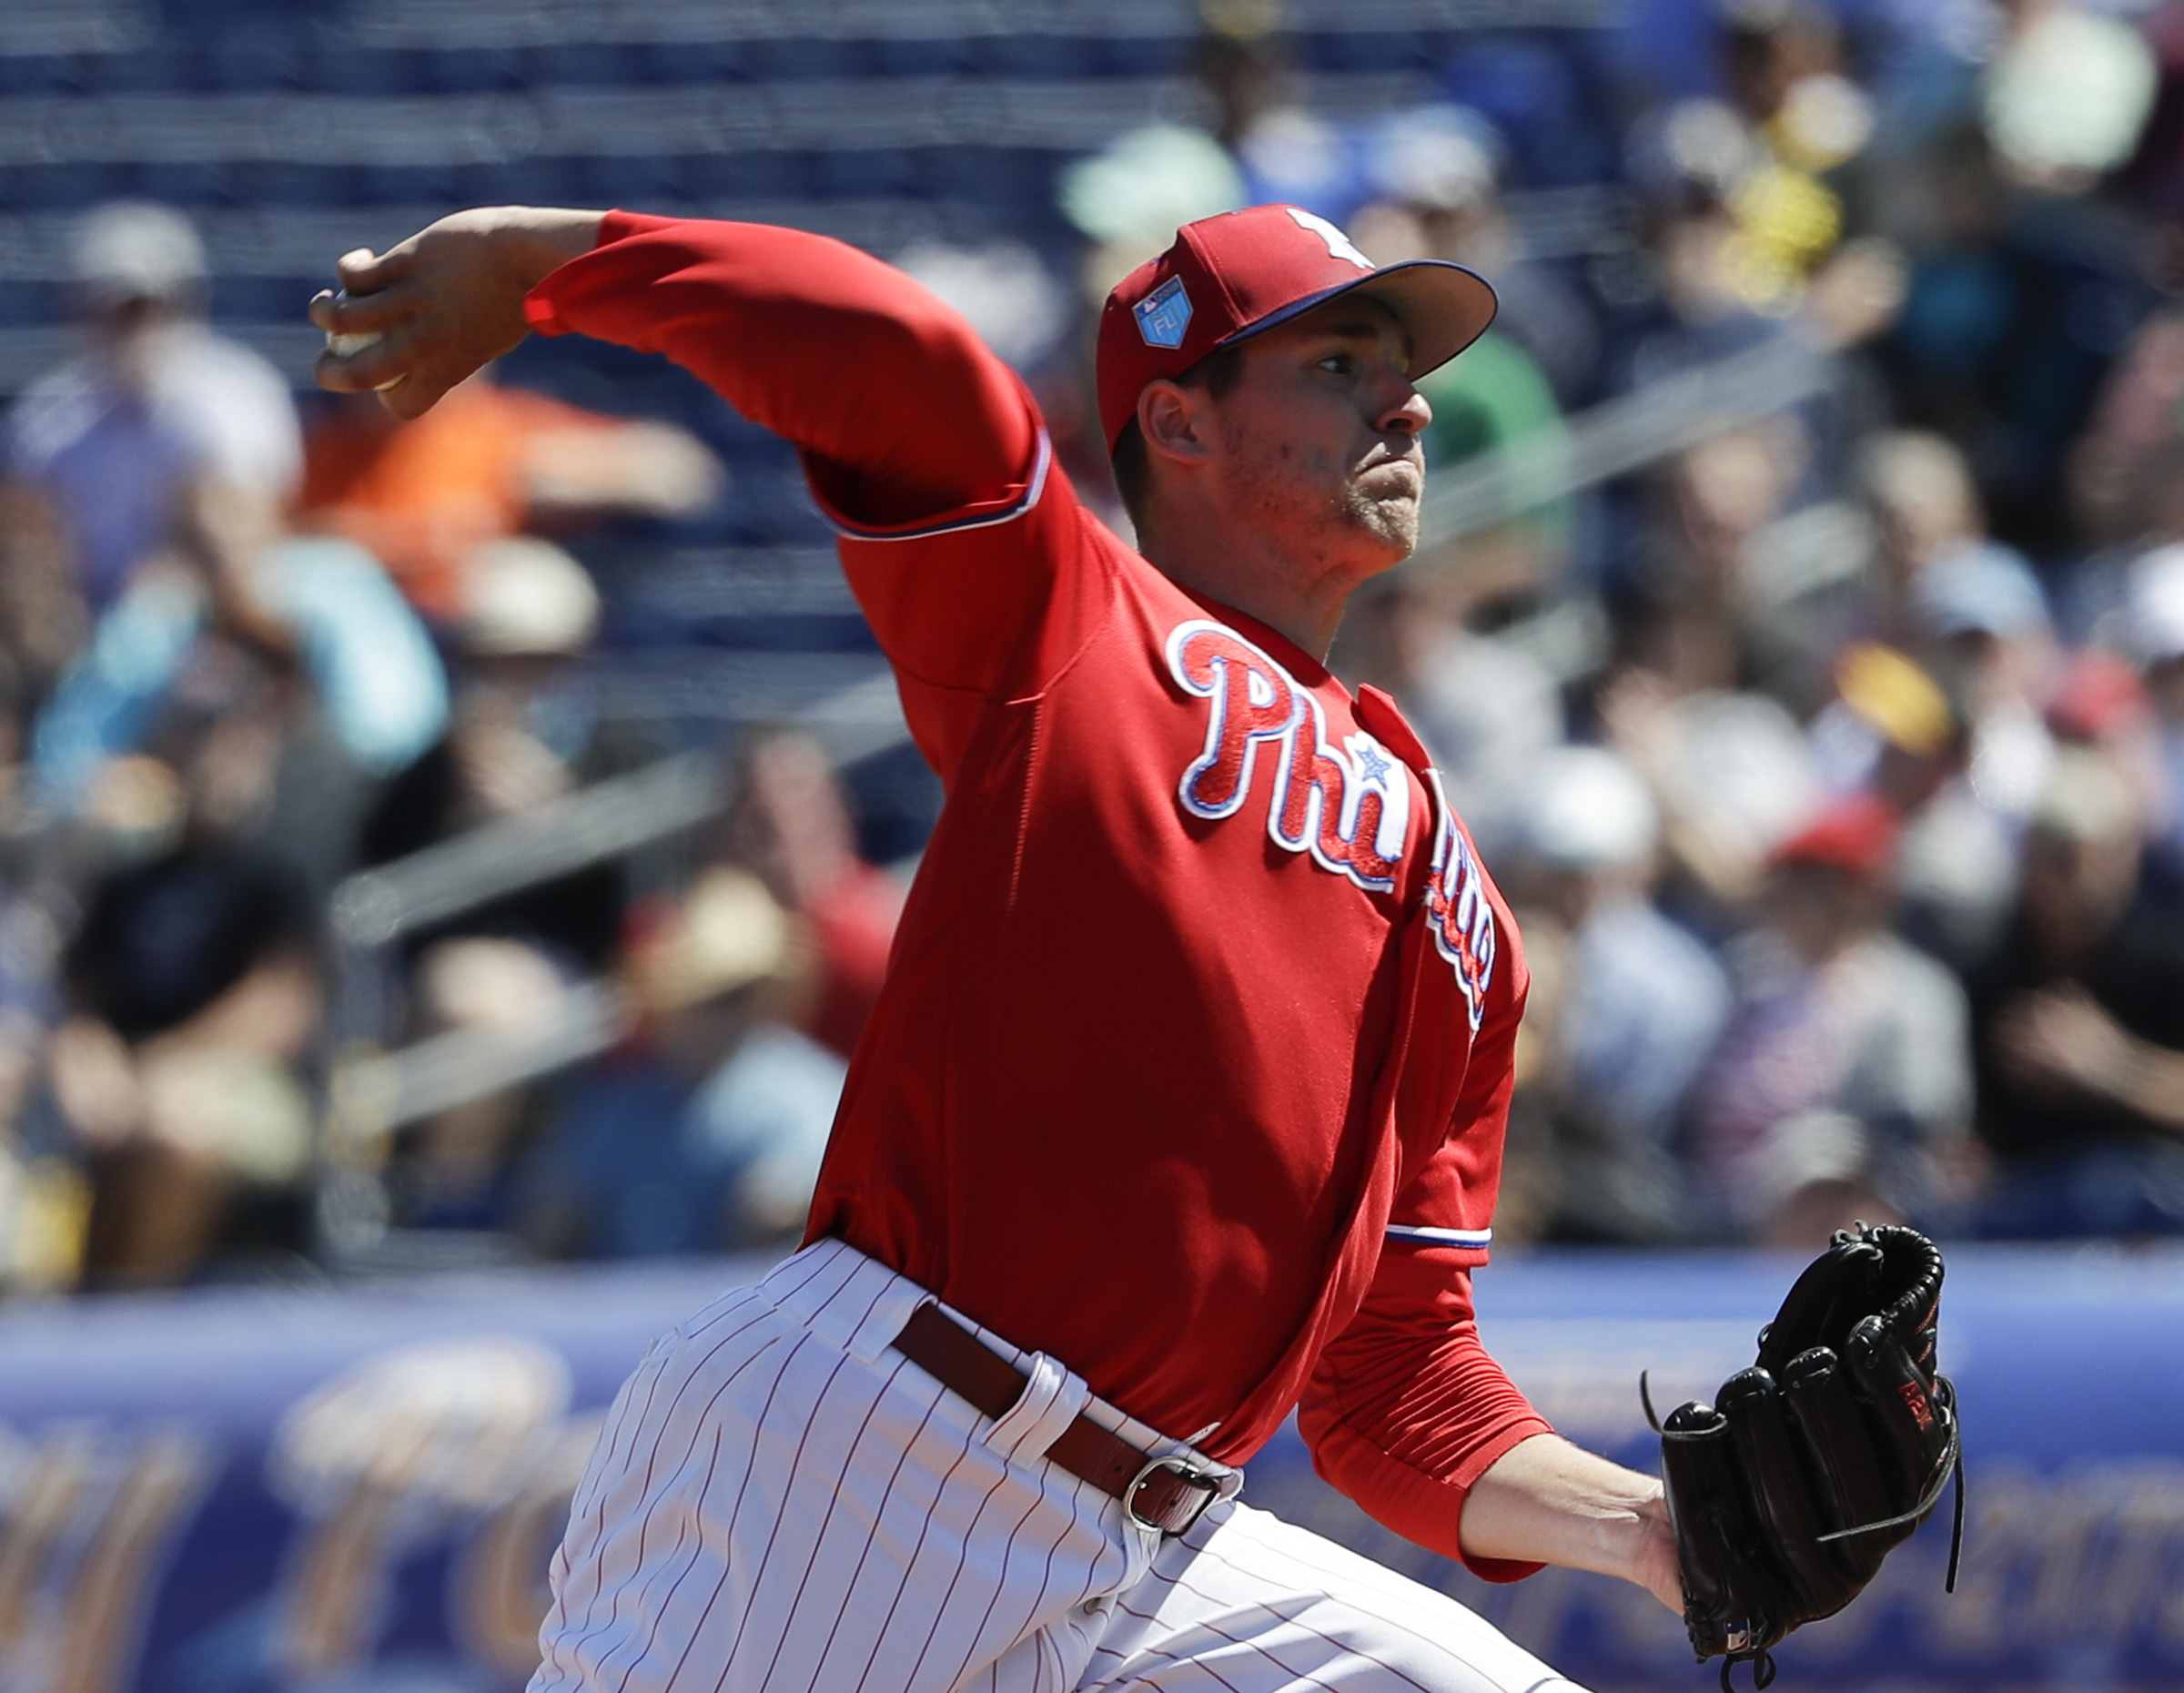 Phillies pitcher Jerad Eickhoff throws the baseball in the first-inning during a spring training game against the Pittsburgh Pirates on Friday, March 9, 2018 at Spectrum Field in Clearwater, FL. YONG KIM / Staff Photographer